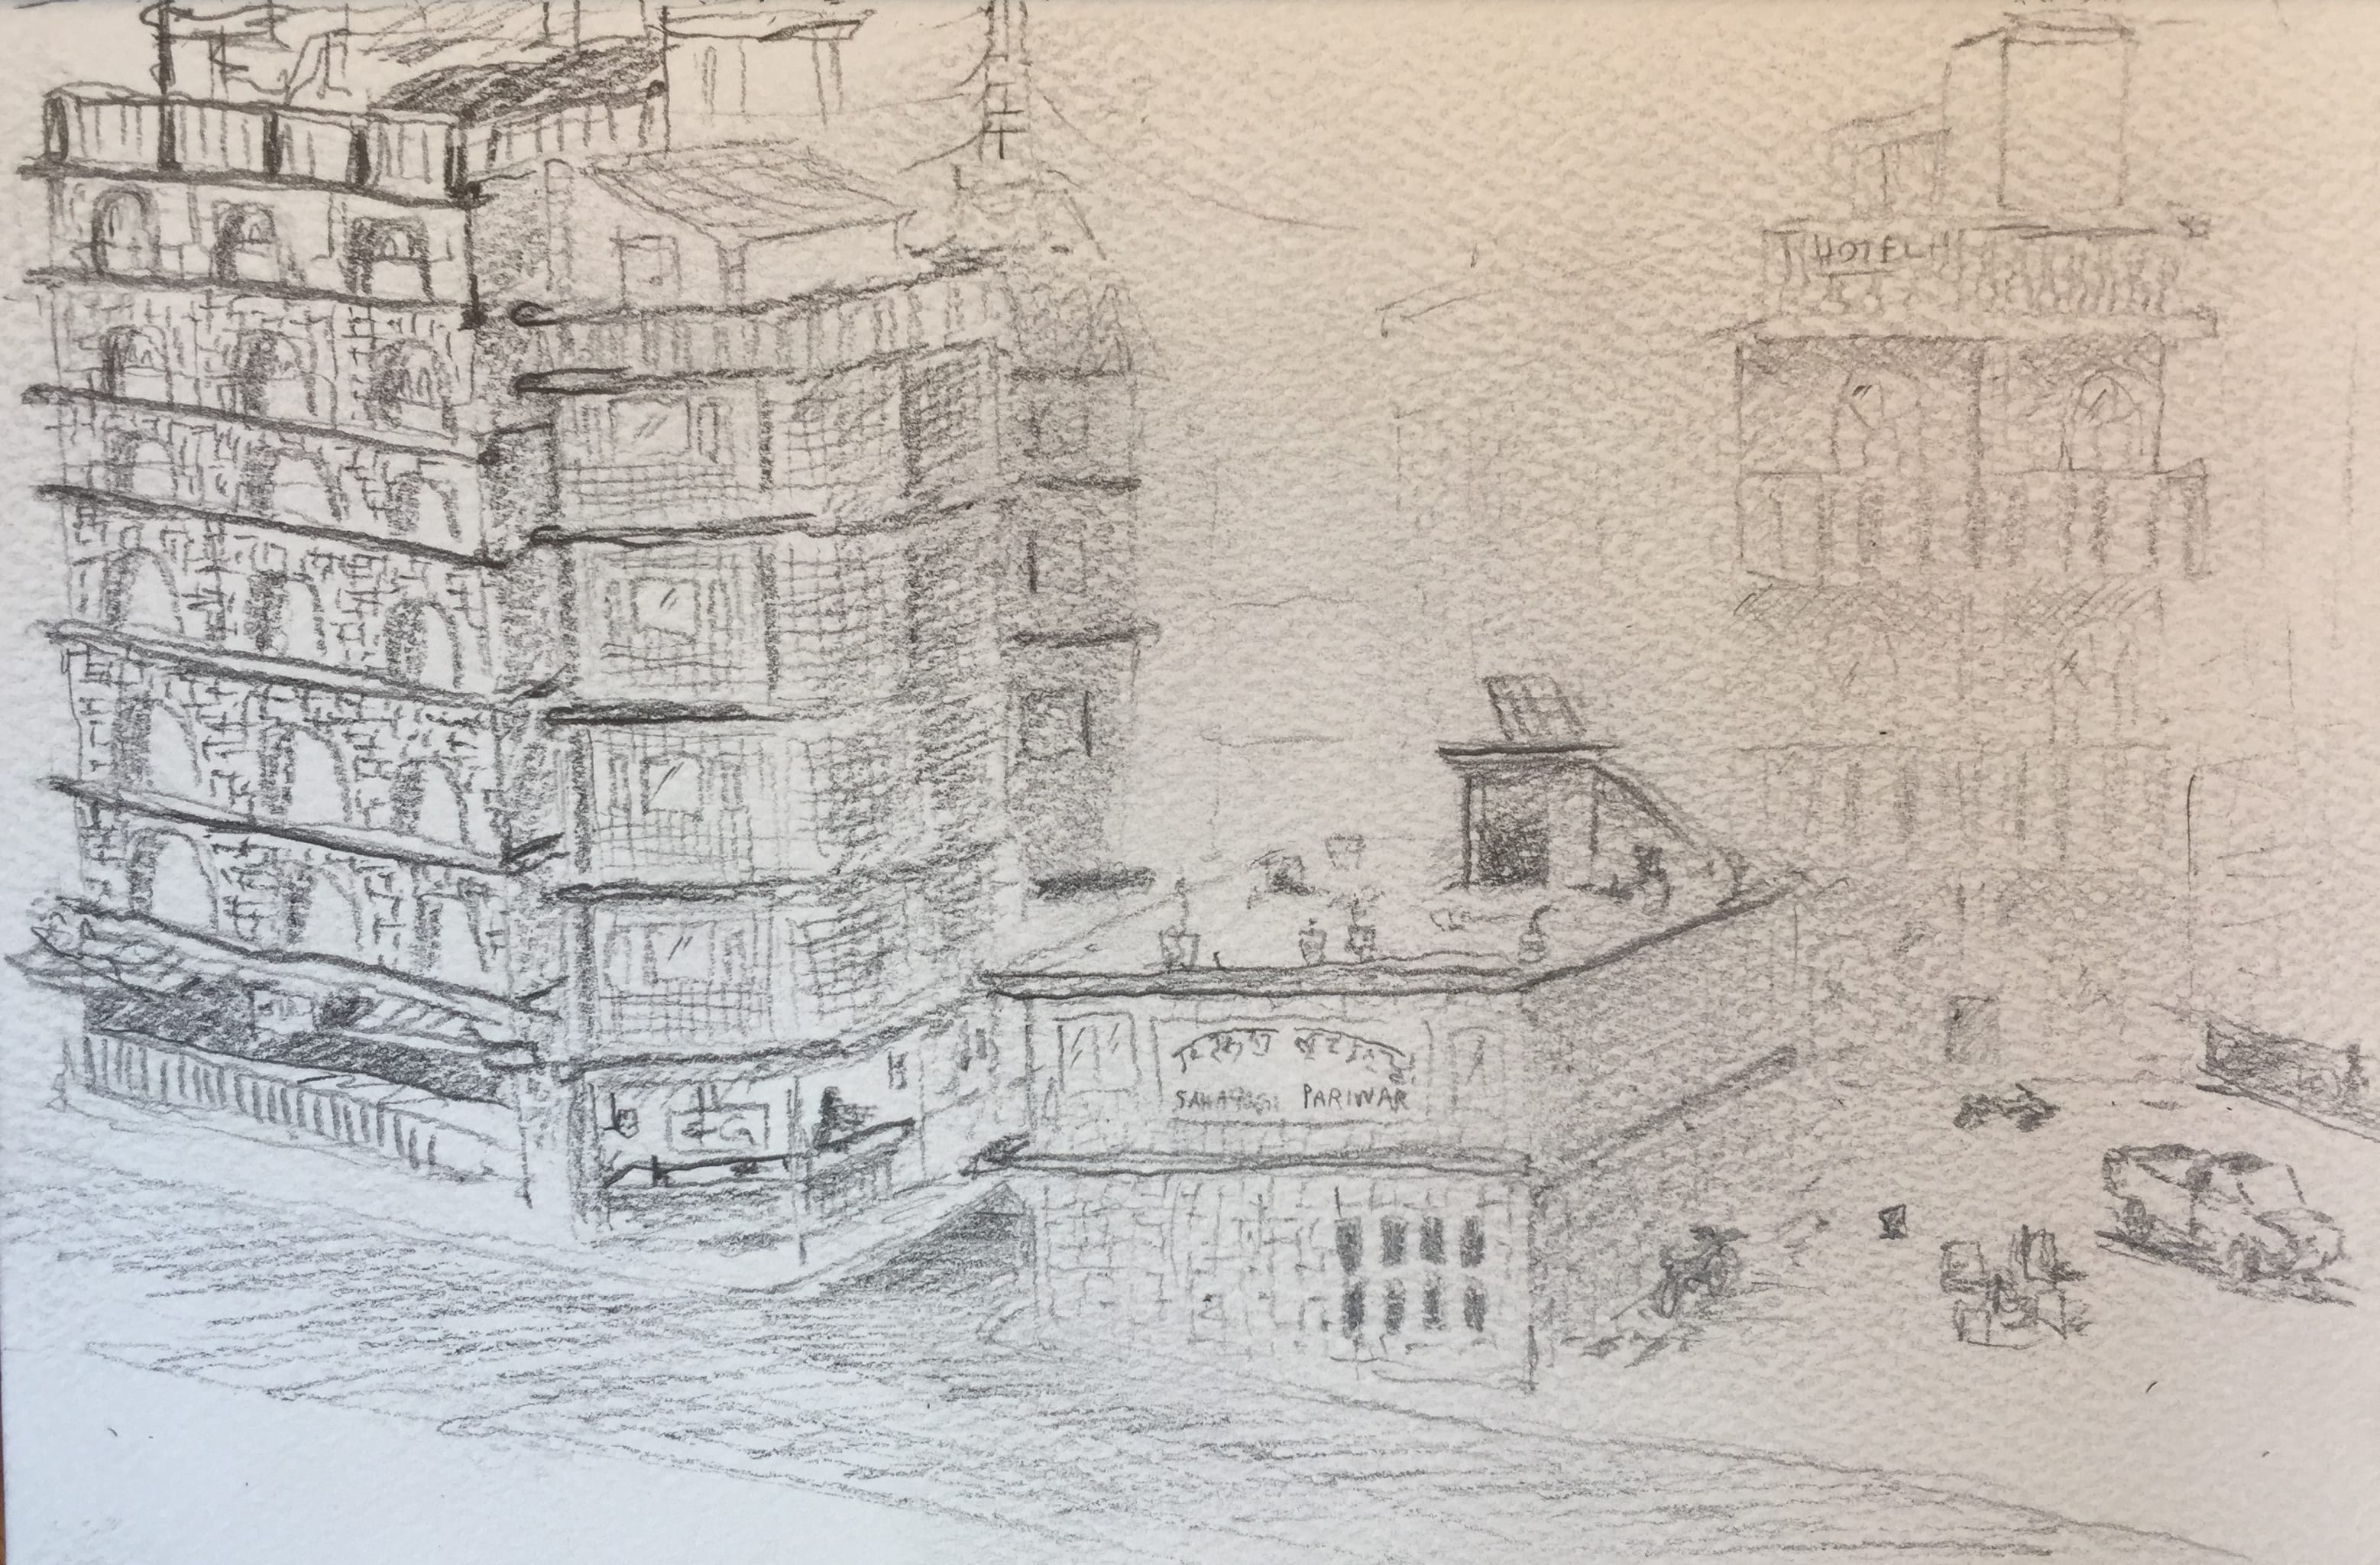 My sketch of the view from Hotel Prince Kathmandu.